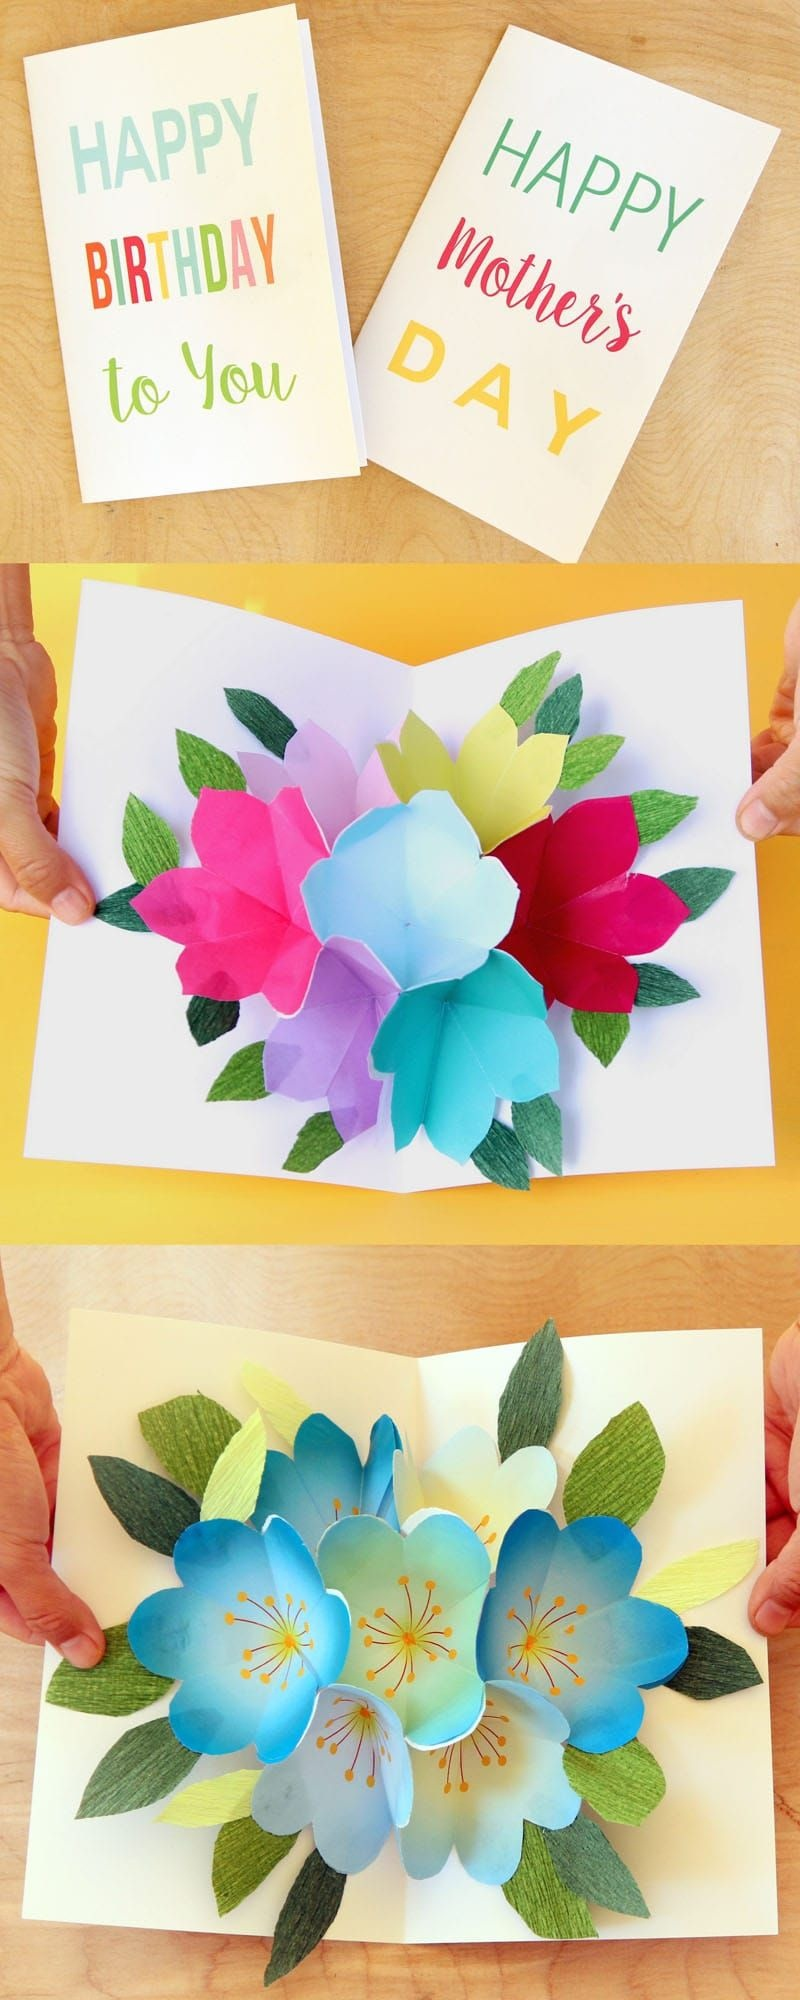 Free Printable Happy Birthday Card With Pop Up Bouquet | Printables - Free Printable Birthday Pop Up Card Templates